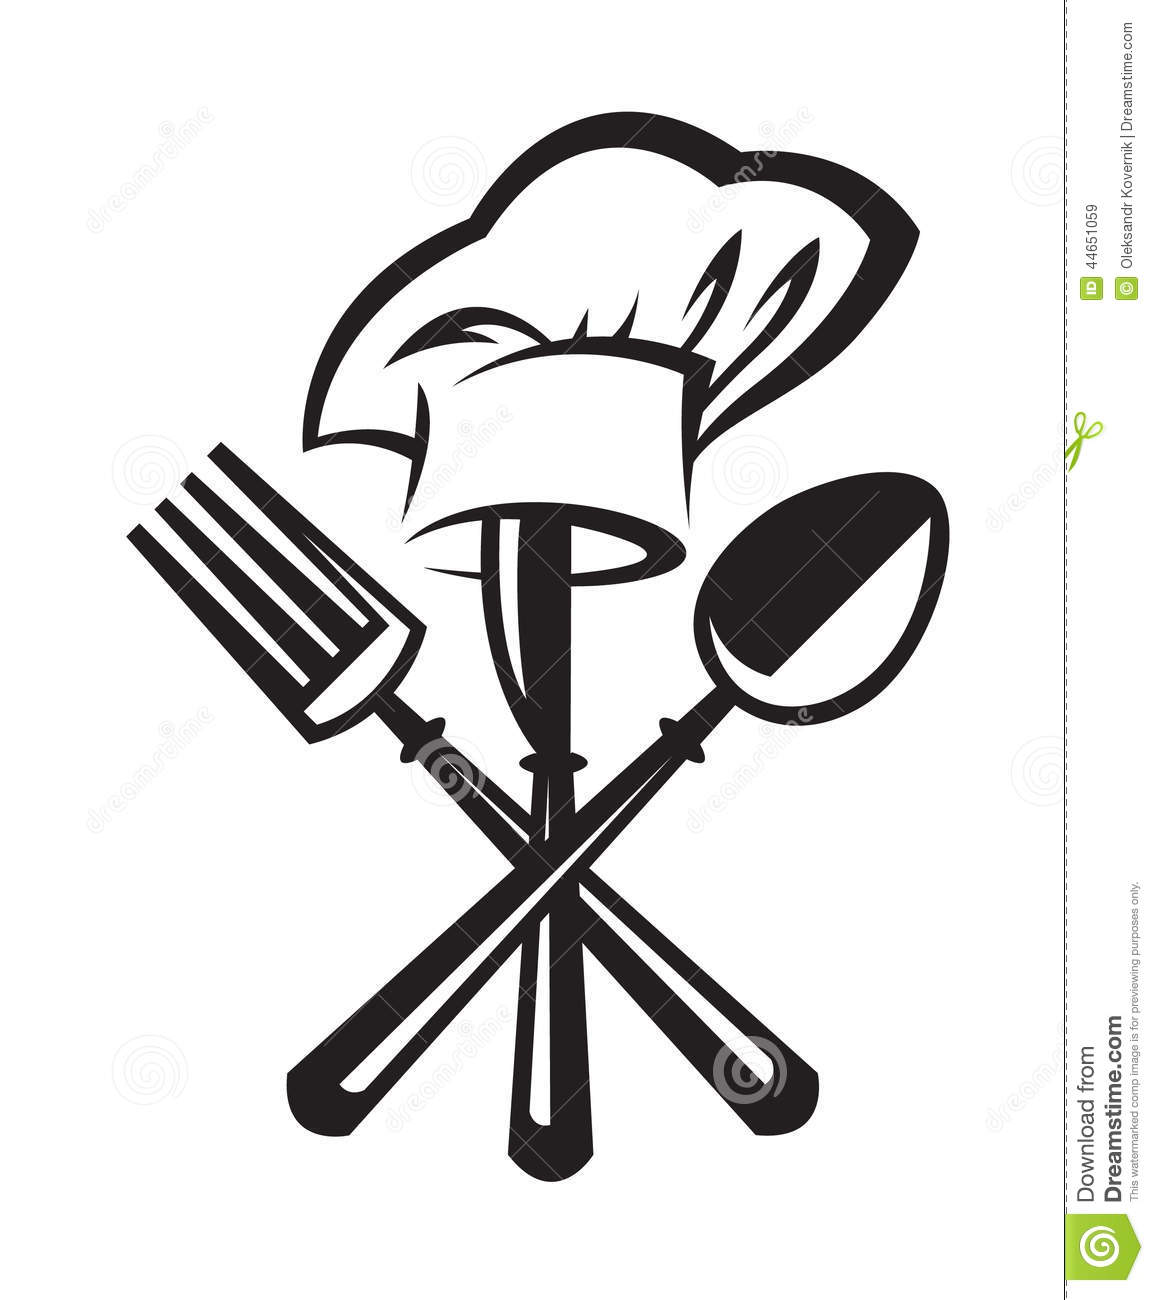 Knife Fork And Spoon Stock Vector Illustration Of Icon